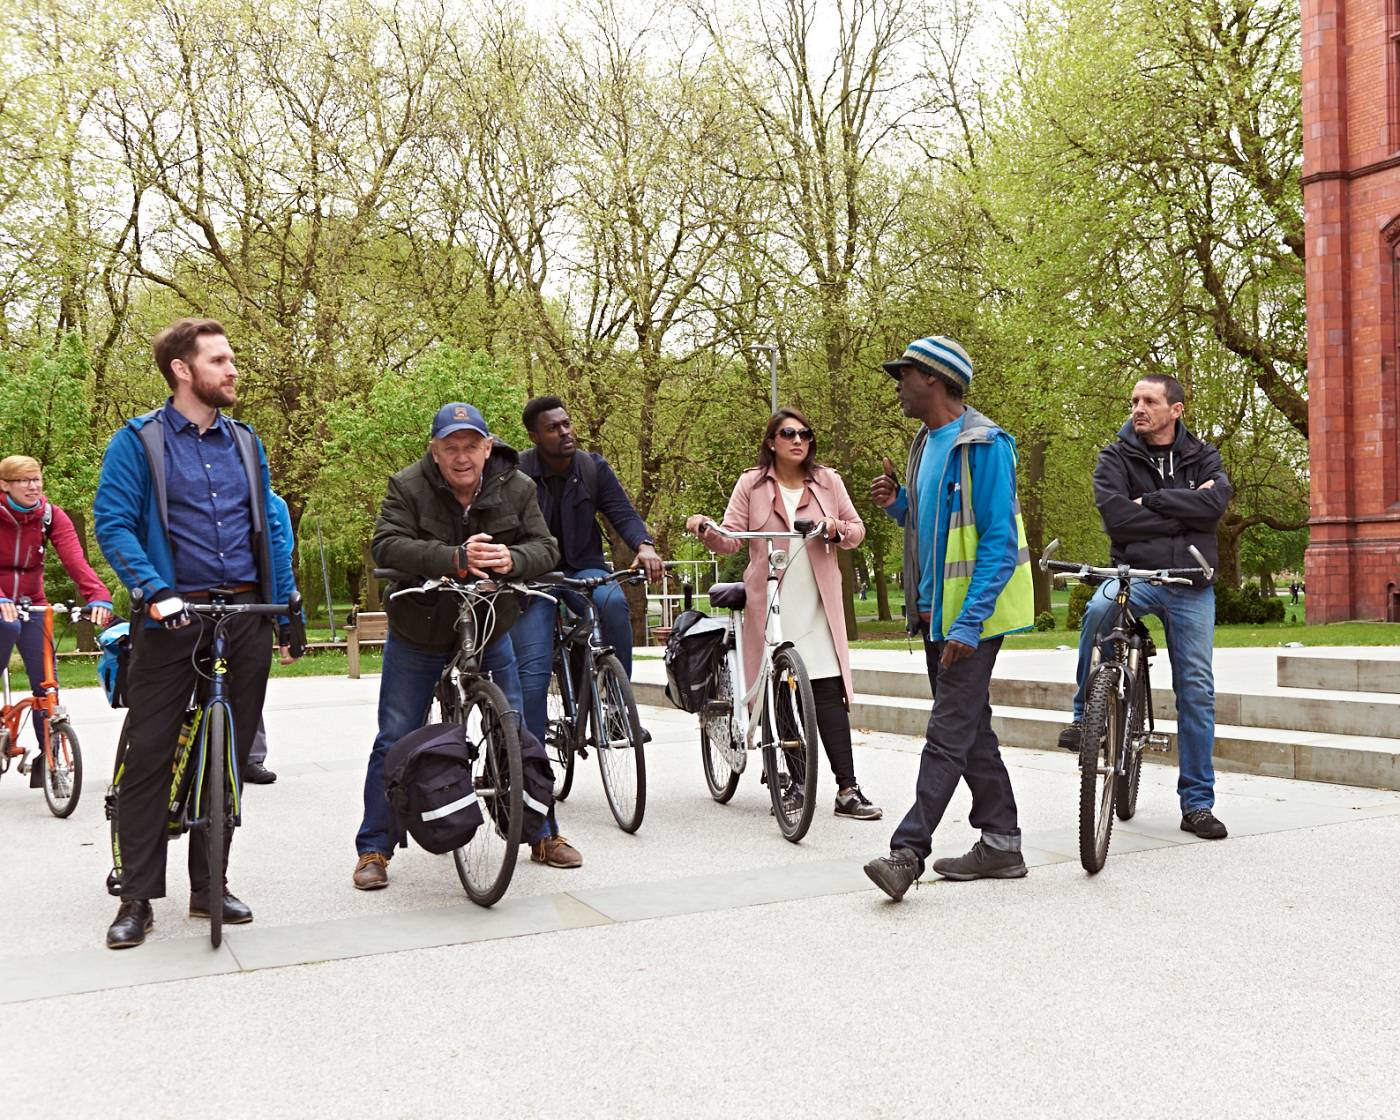 Group of people doing cycling training